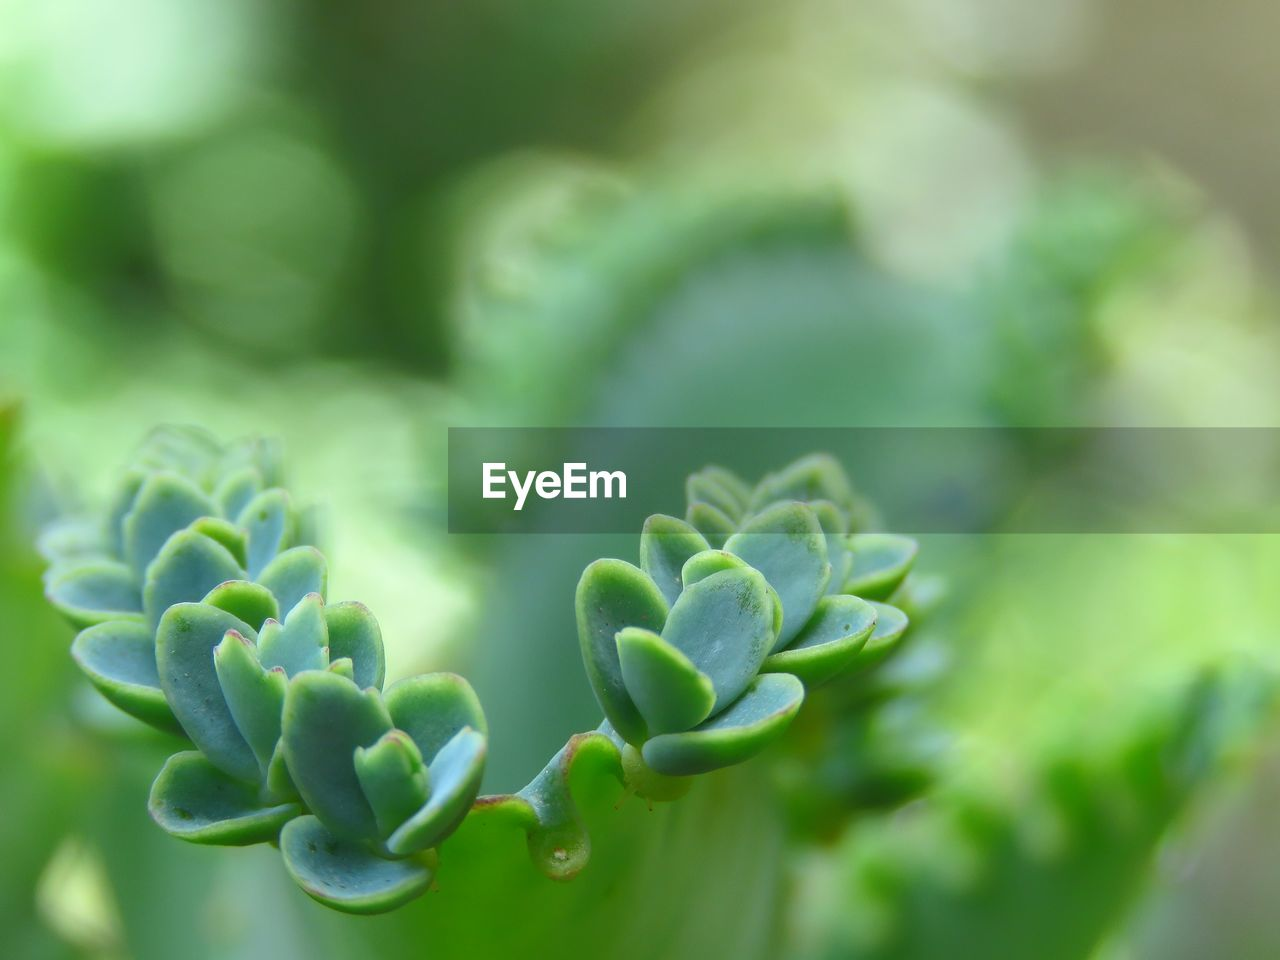 growth, green color, plant, beauty in nature, no people, nature, selective focus, close-up, day, plant part, leaf, freshness, focus on foreground, outdoors, tranquility, vulnerability, fragility, succulent plant, botany, natural pattern